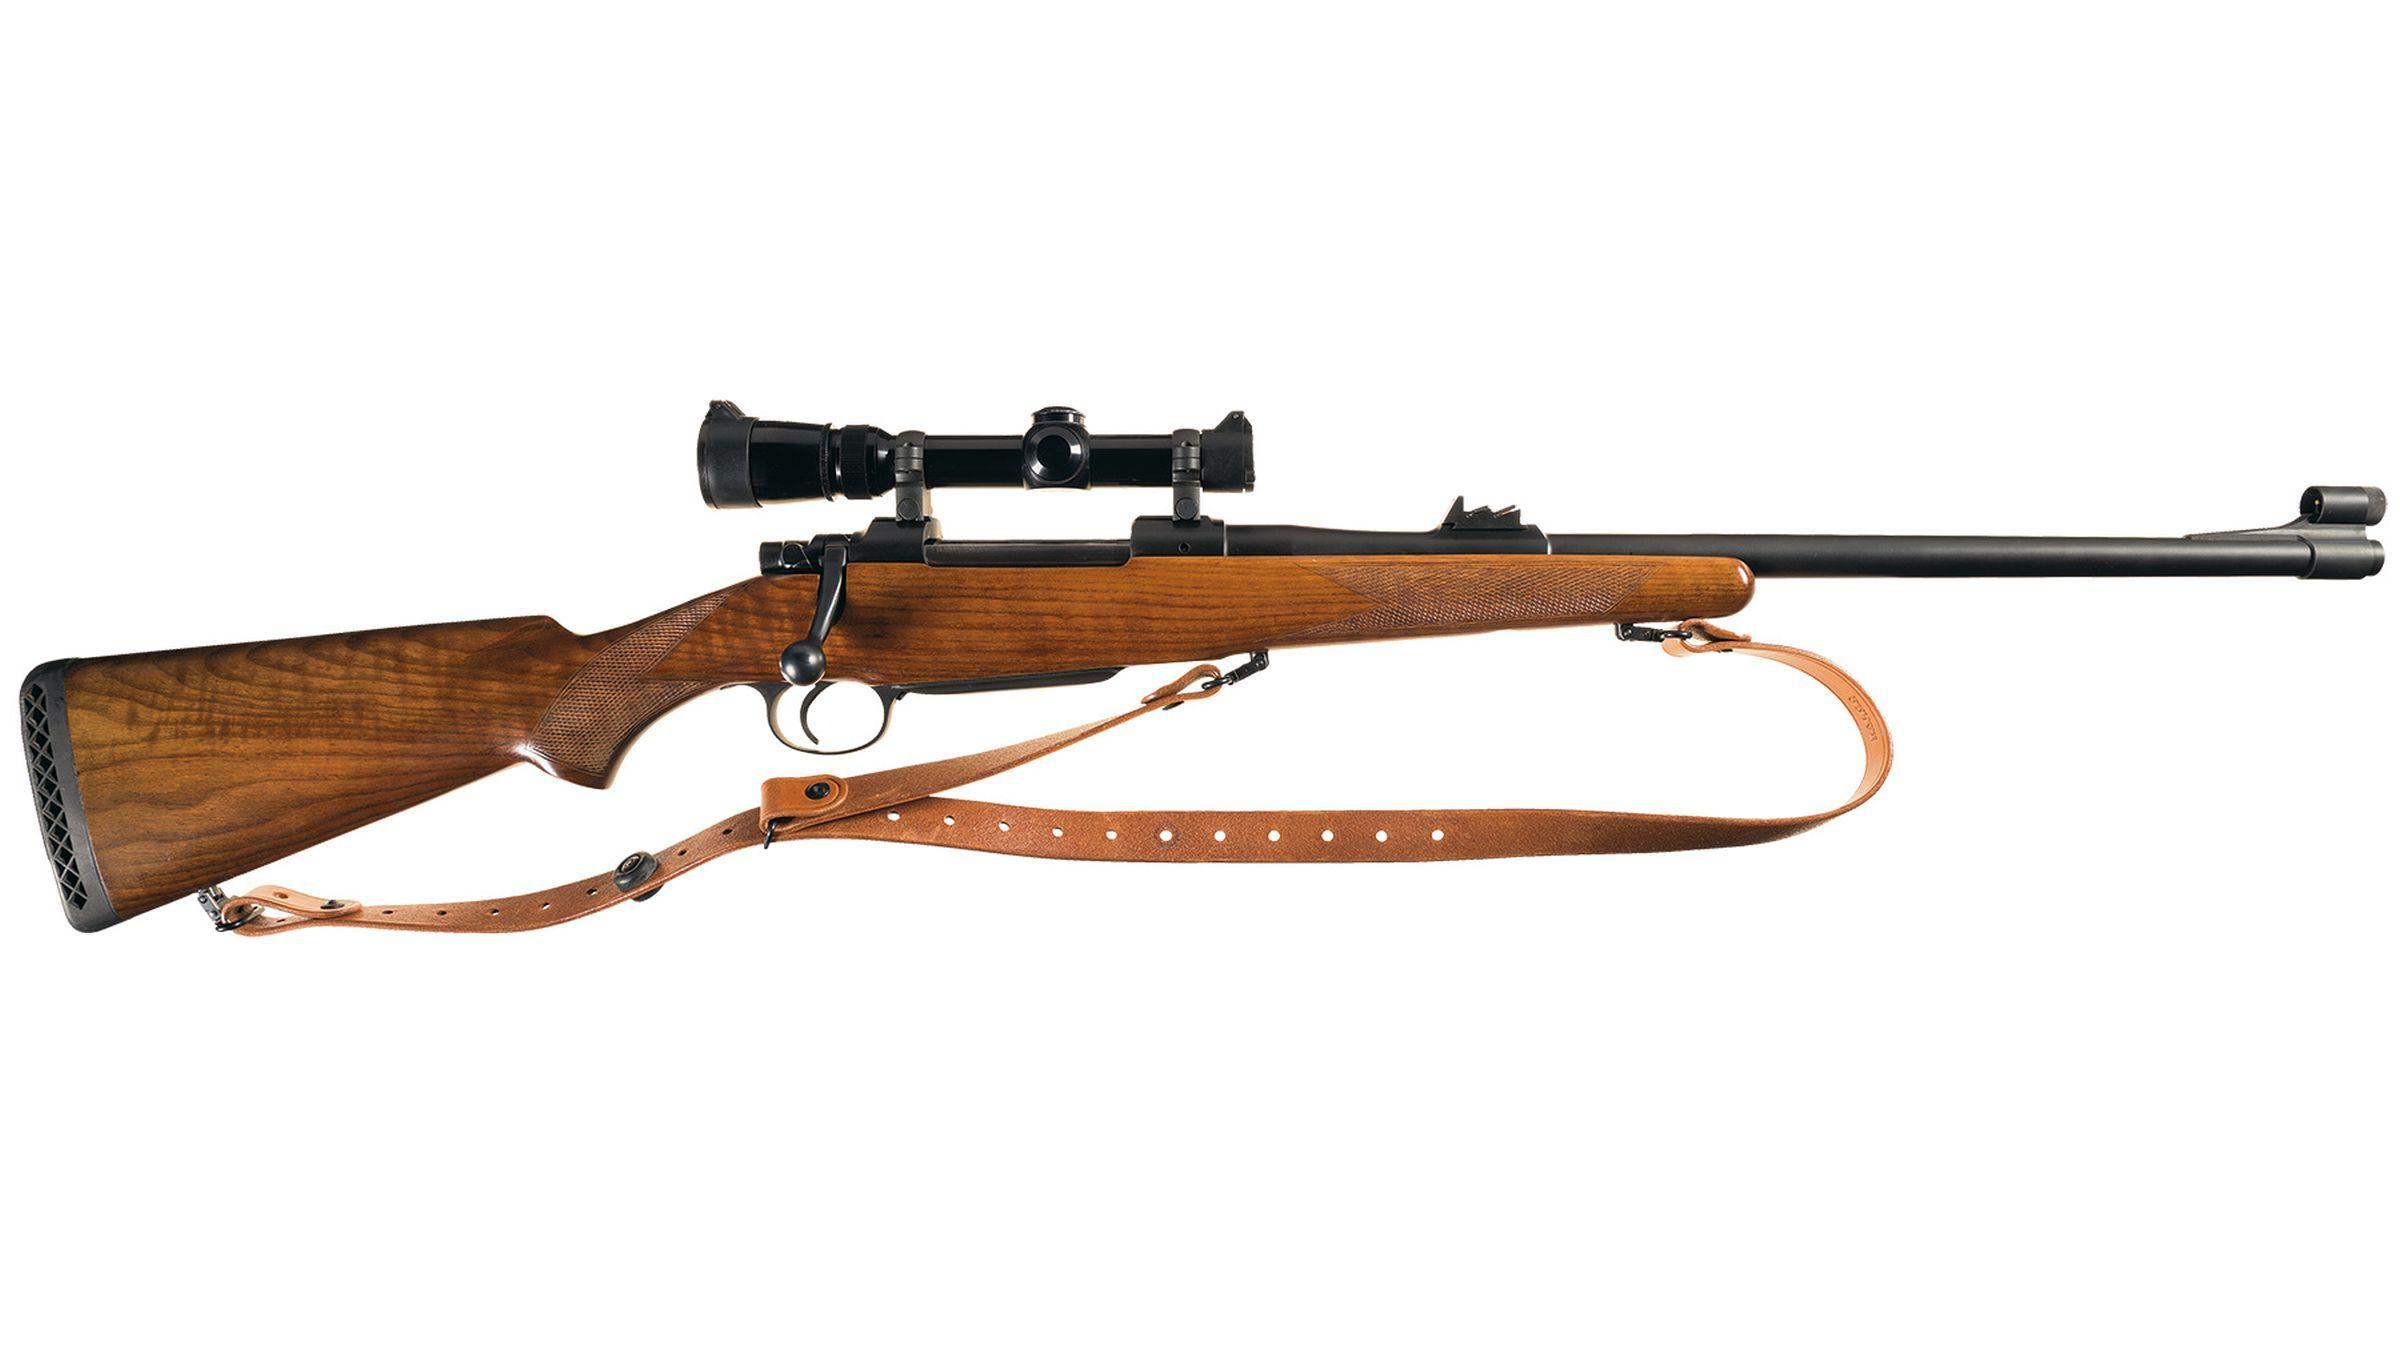 CZ/BRNO ZKK-602 Model Bolt Action Rifle in  458 Win  with Scope